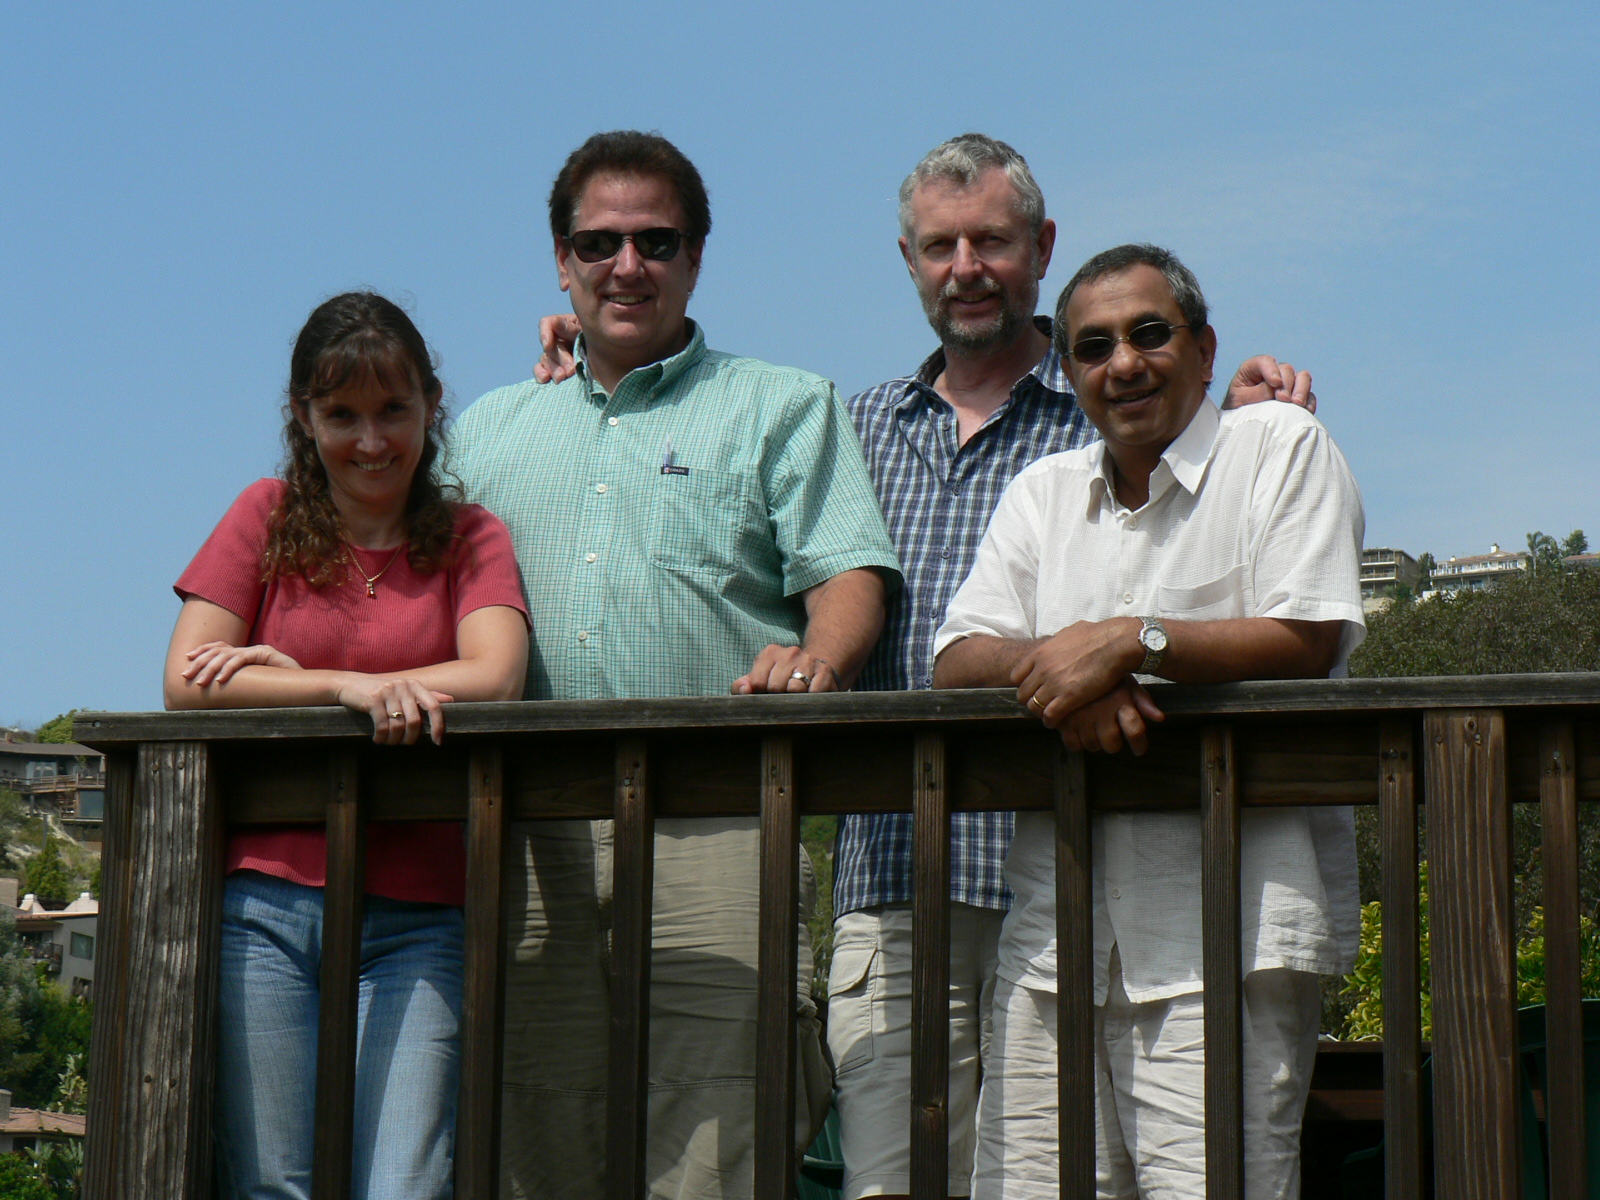 : Drs. Beeton, Pennington, Norton, and Chandy in 2008 in Southern California